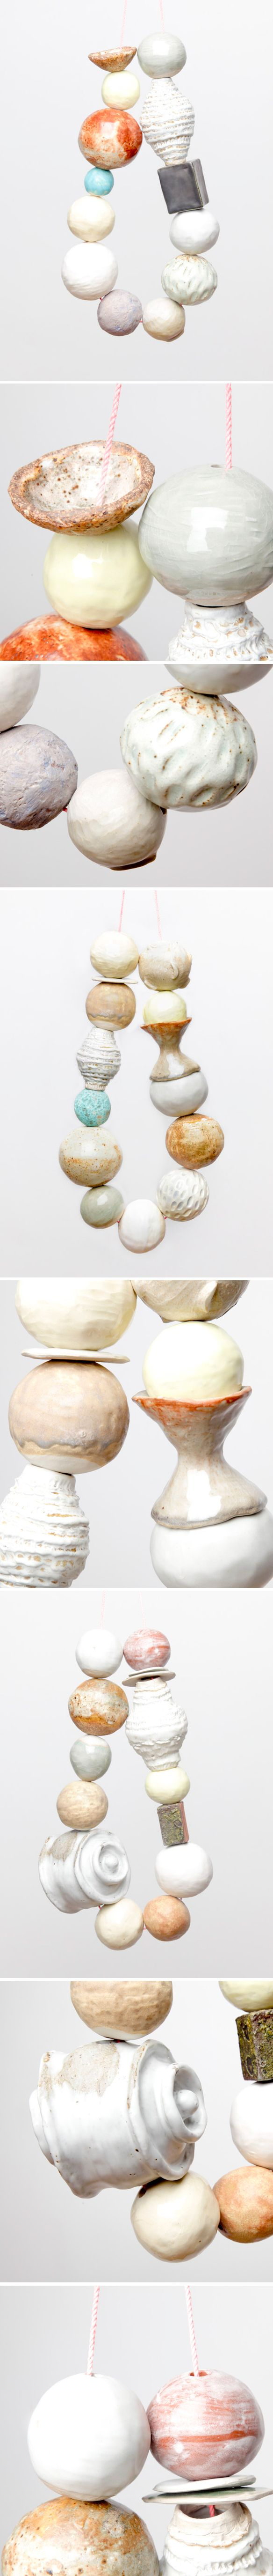 Stunning ceramic necklaces… that happen to be up to 3 feet in length. Amazing. This is the organic, delicate, beautiful, large-scale work of Seattle based ceramics artist Katy Krantz.